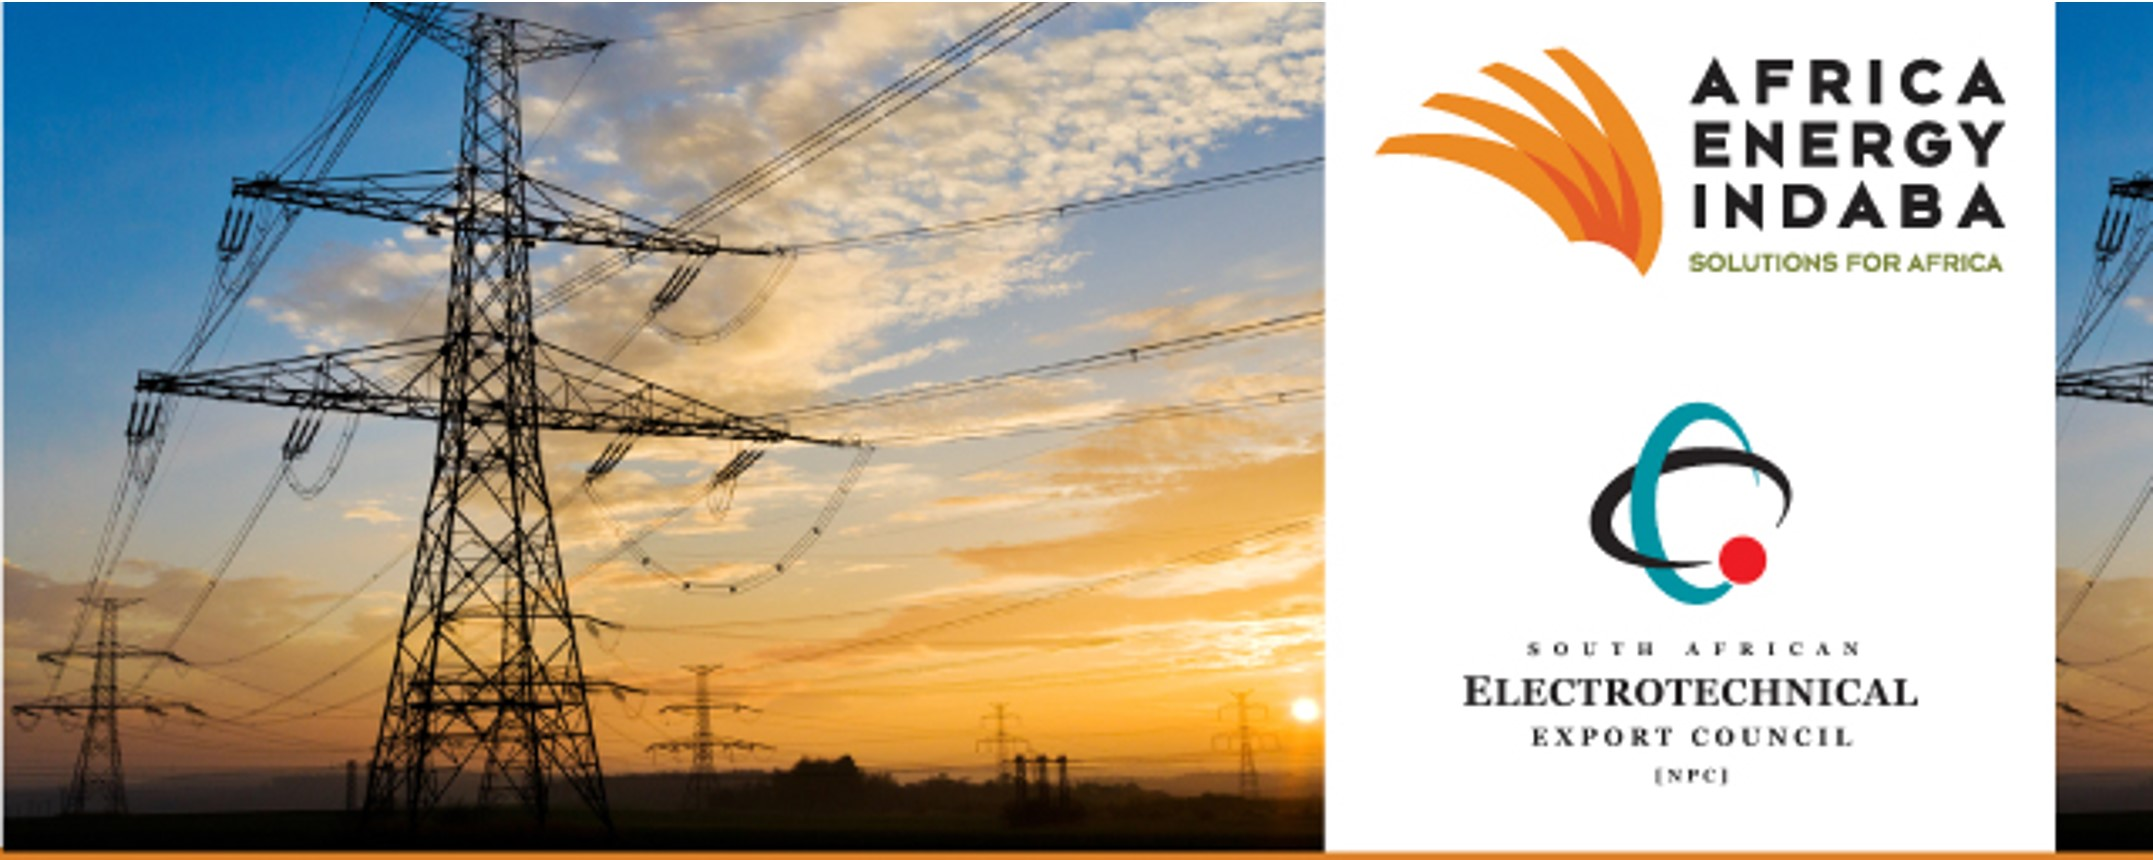 Africa Energy Indaba - Africa Energy Indaba 2019 Movemeback African event cover image